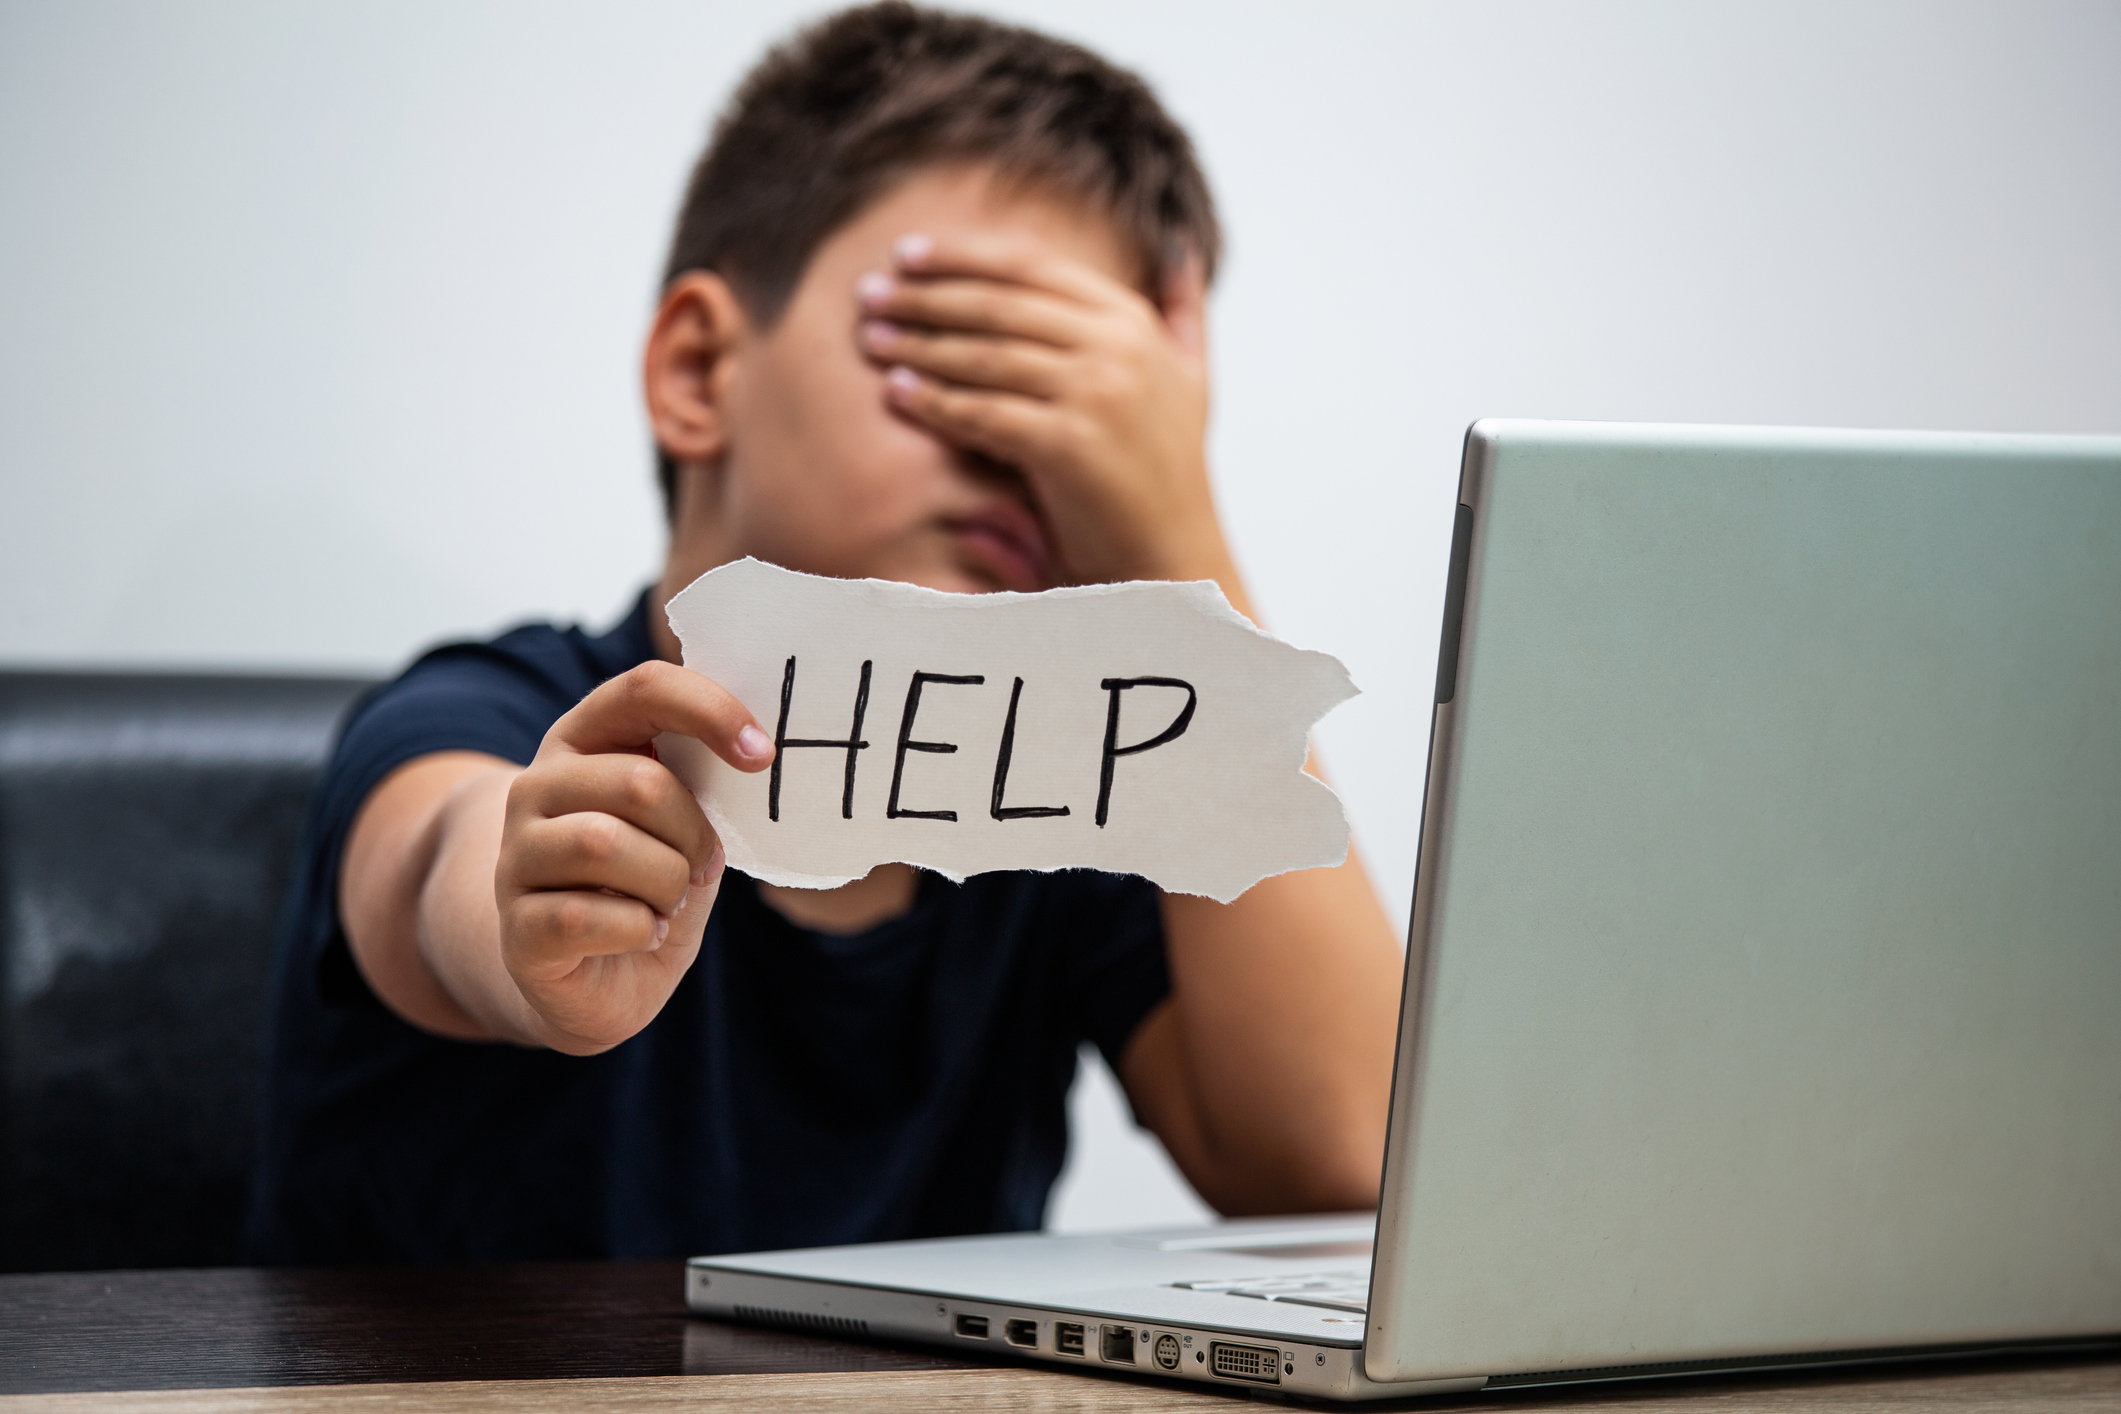 Sad and scared young boy with computer laptop asking for help